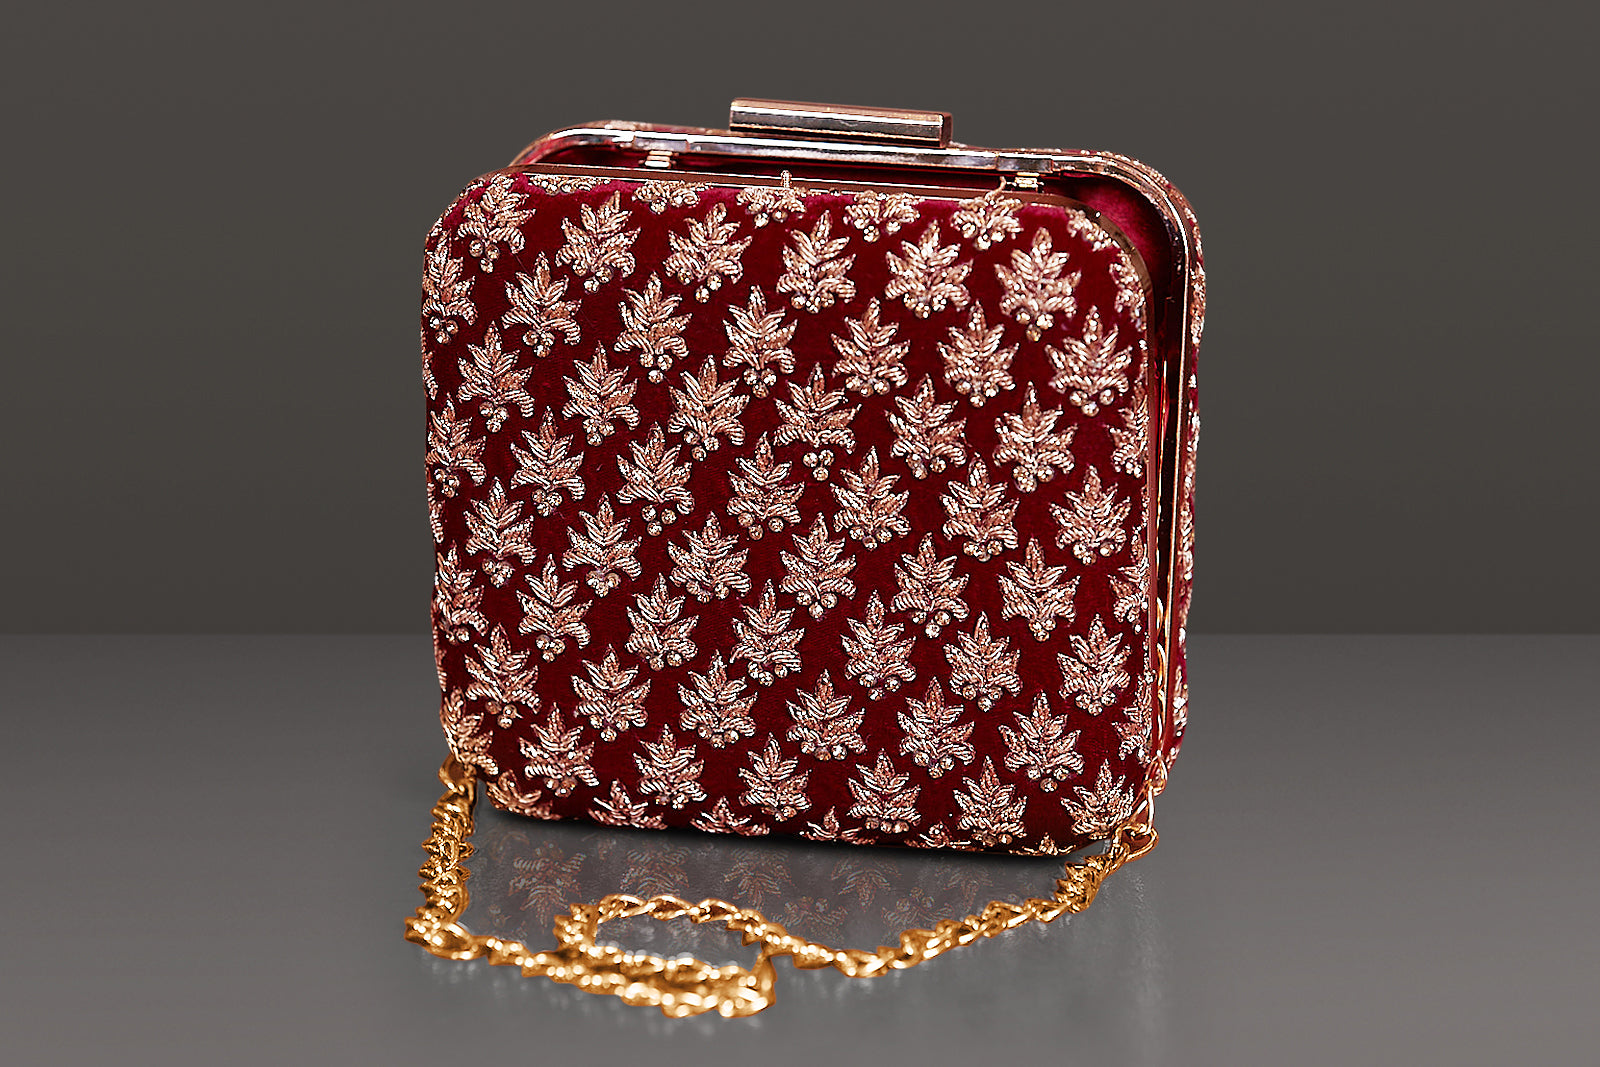 MAROON VELVET BOTH SIDED HEAVY DABKA EMBROIDERY IN A SQUARE METAL FRAME